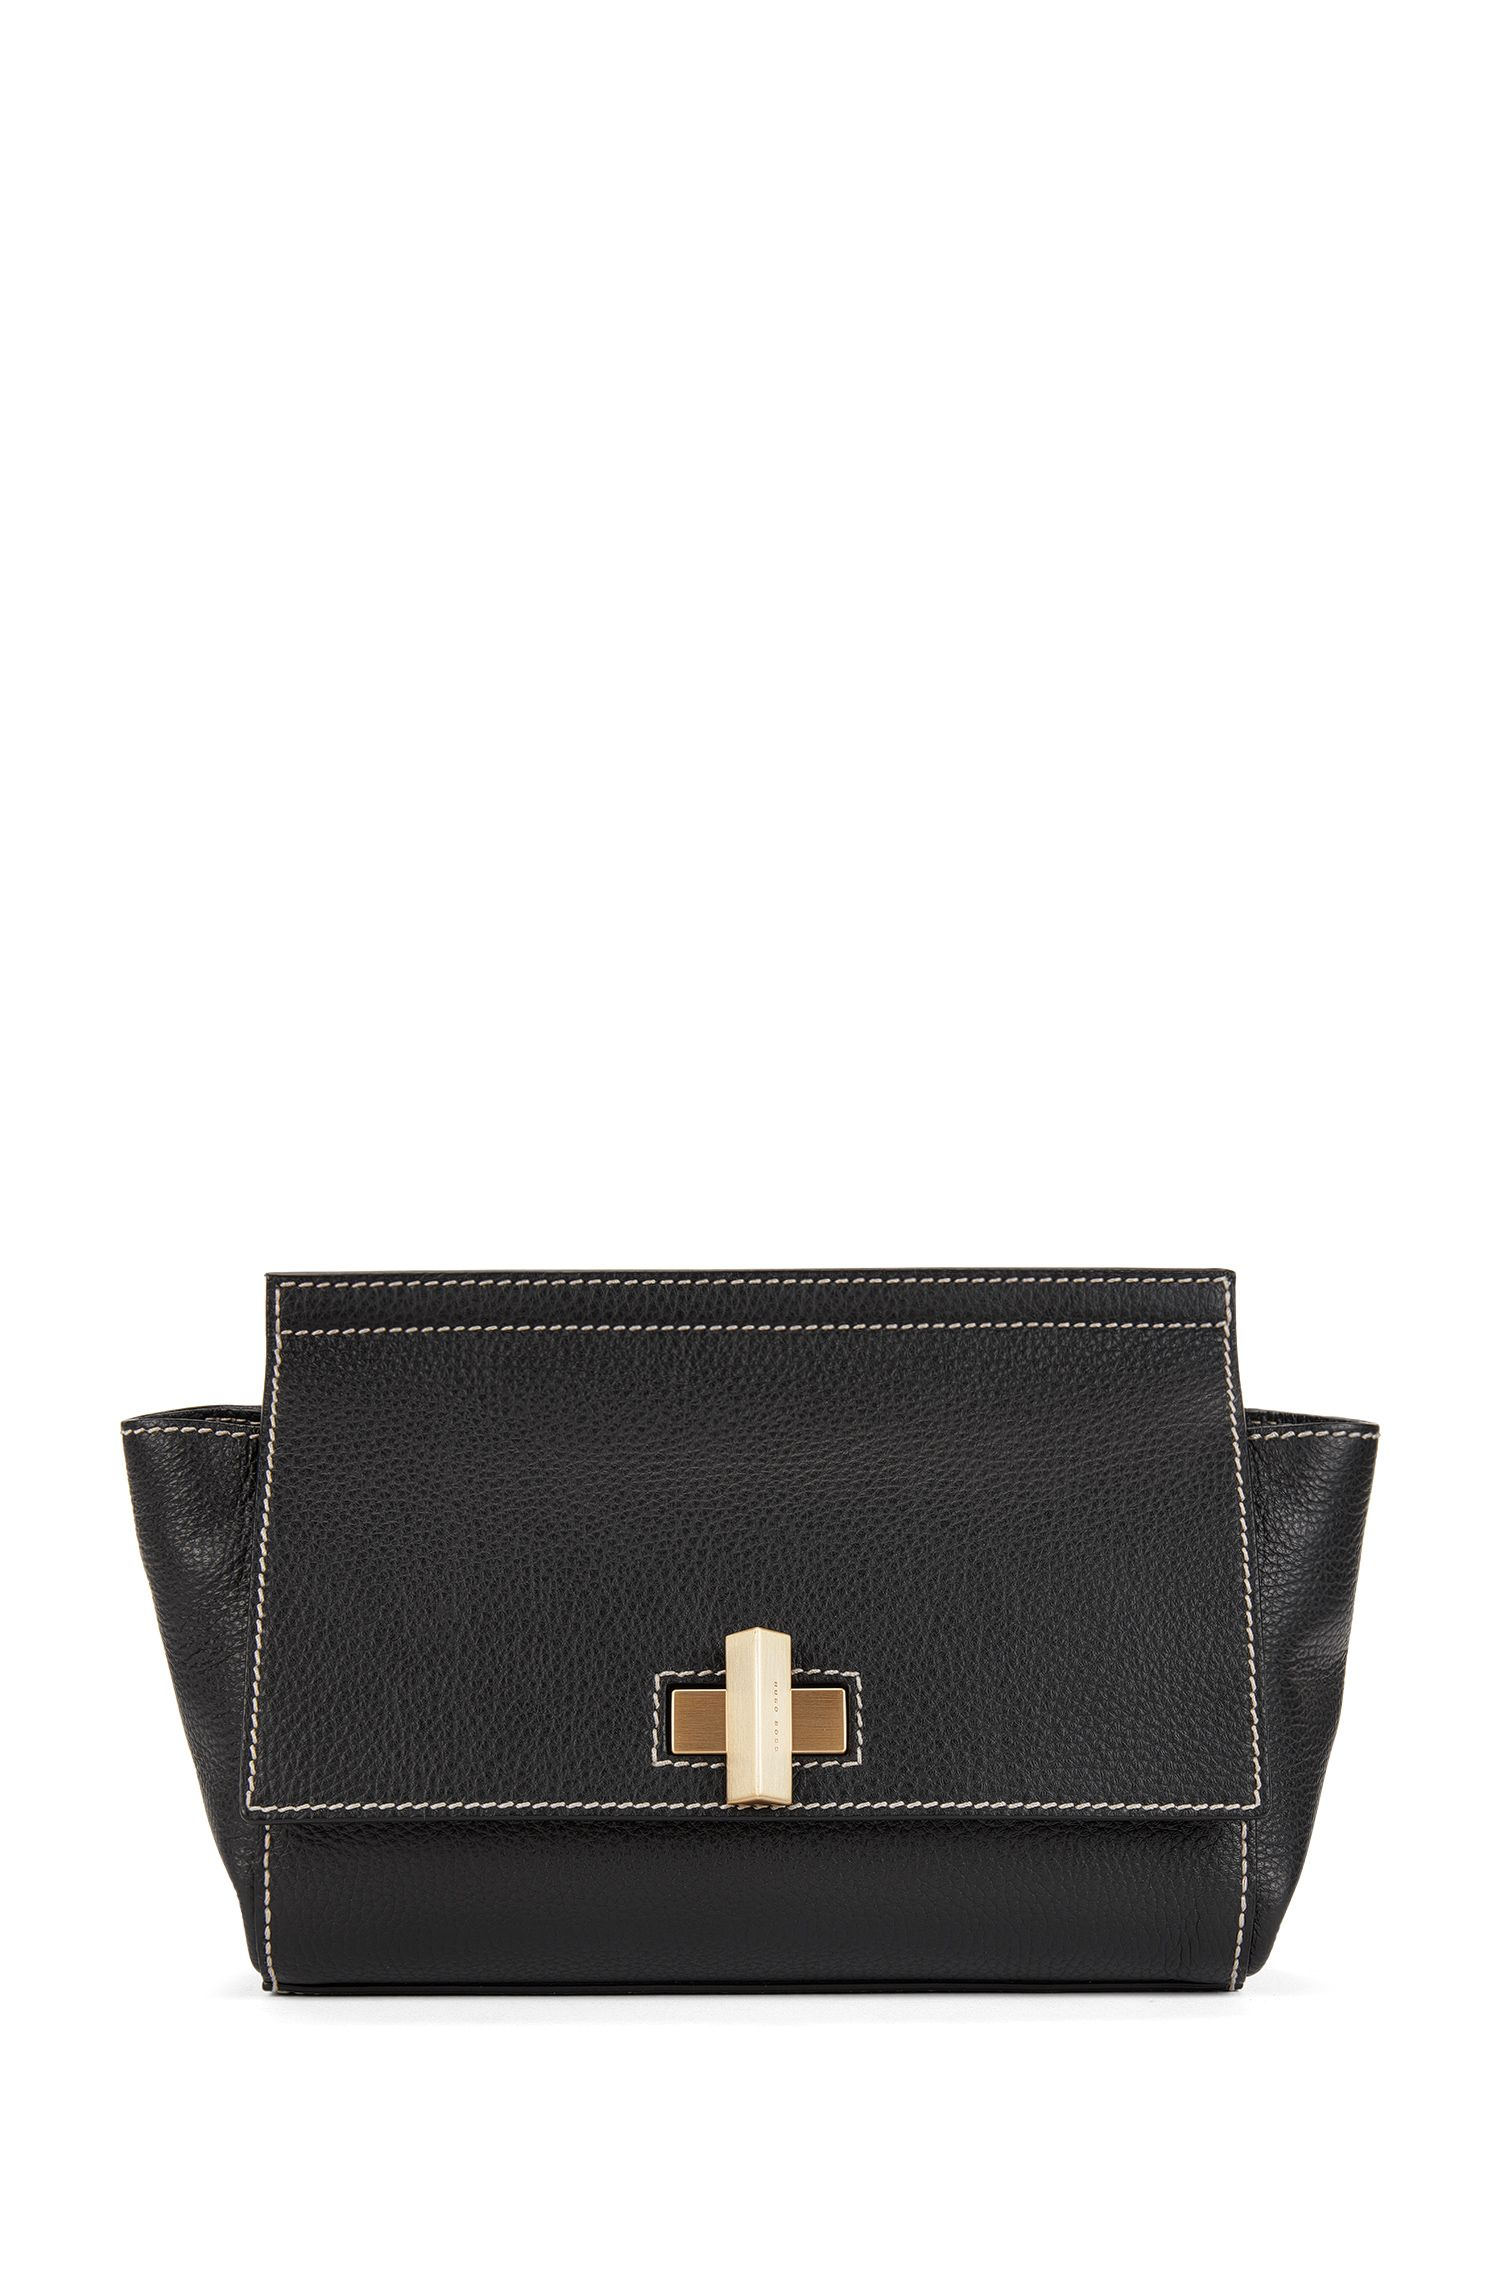 Full-Grain Leather Bag | BOSS Bespoke Soft CW, Black